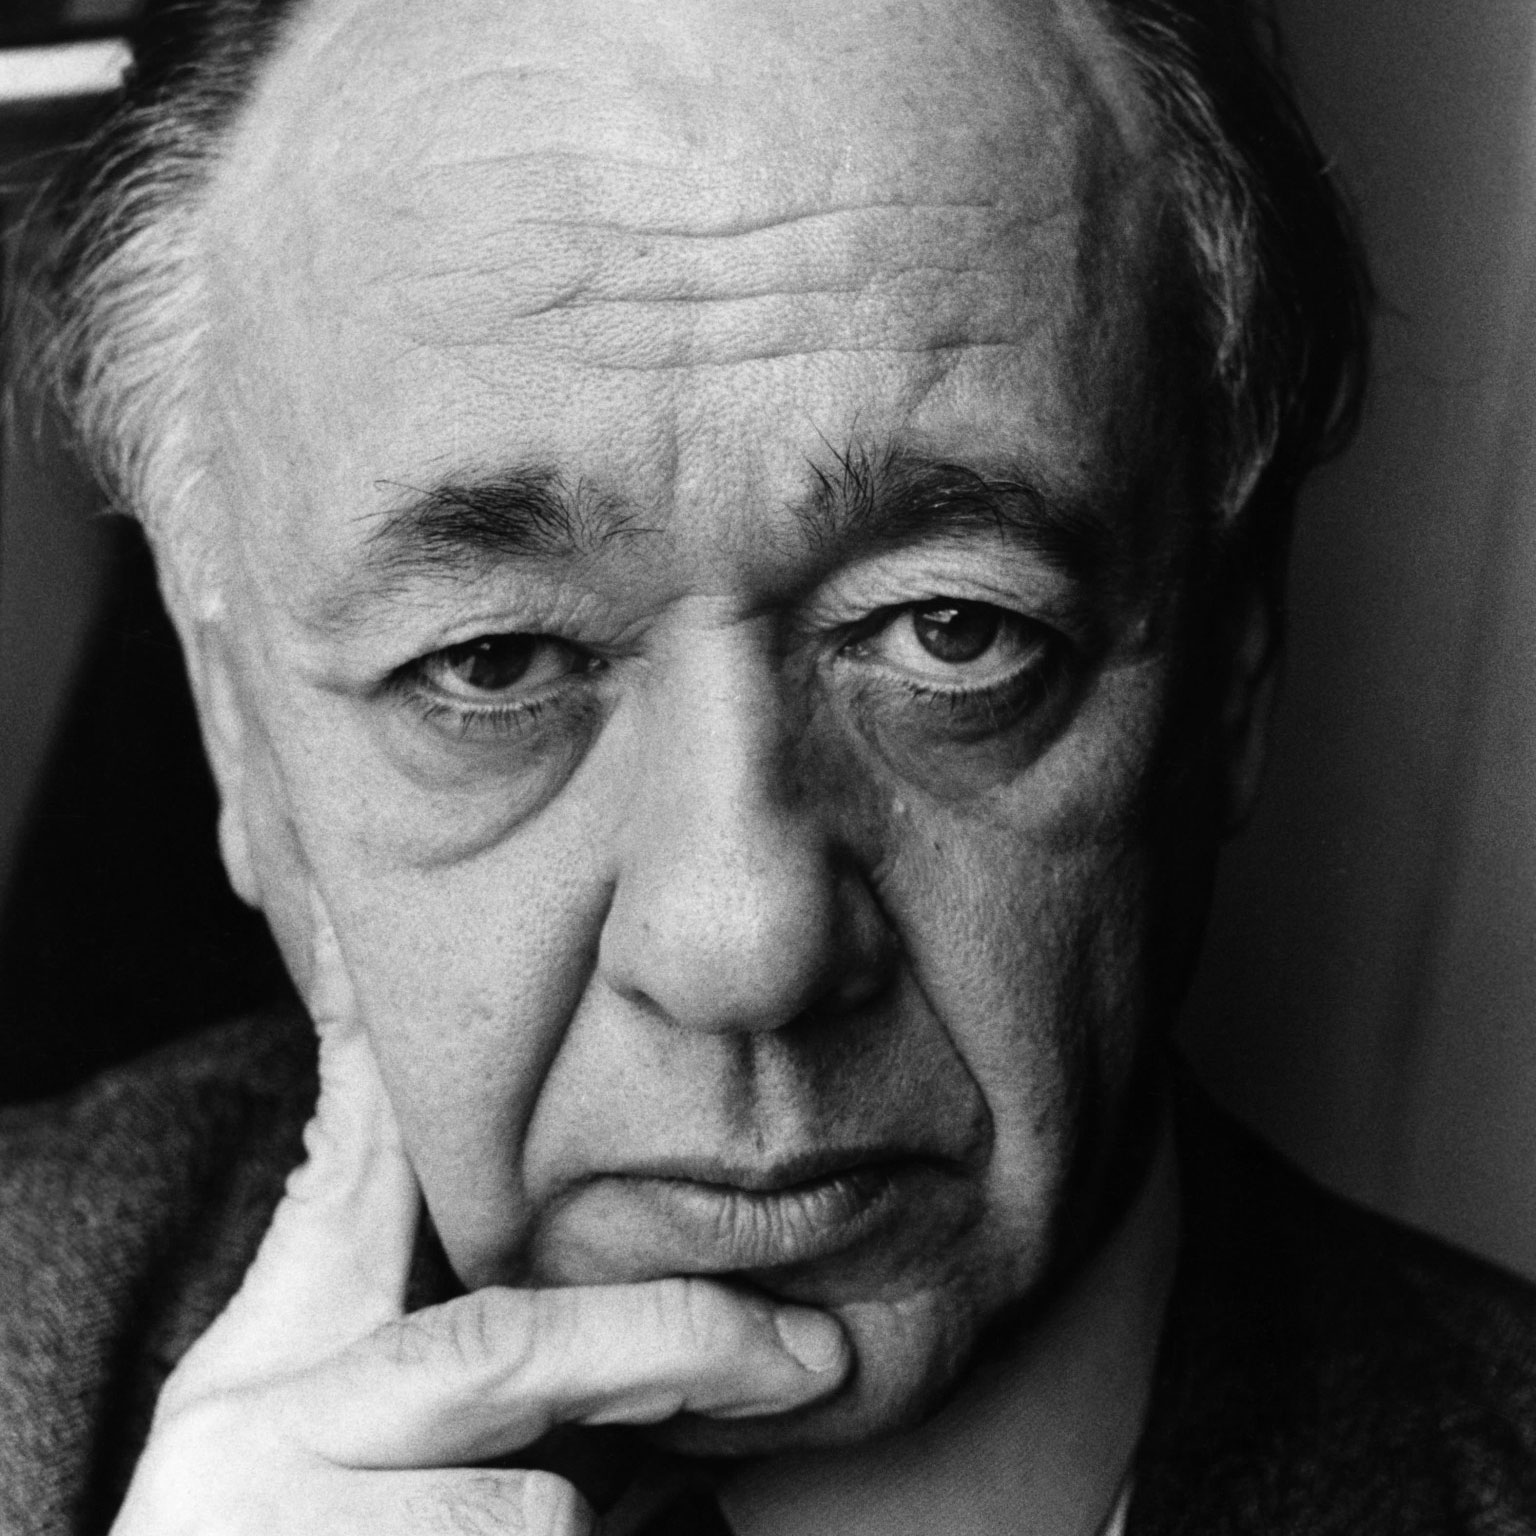 eugene ionesco essay Personal statement for cardiology fellowship dissertation ionesco thesis proposal in feminism short essay on my grandparents.